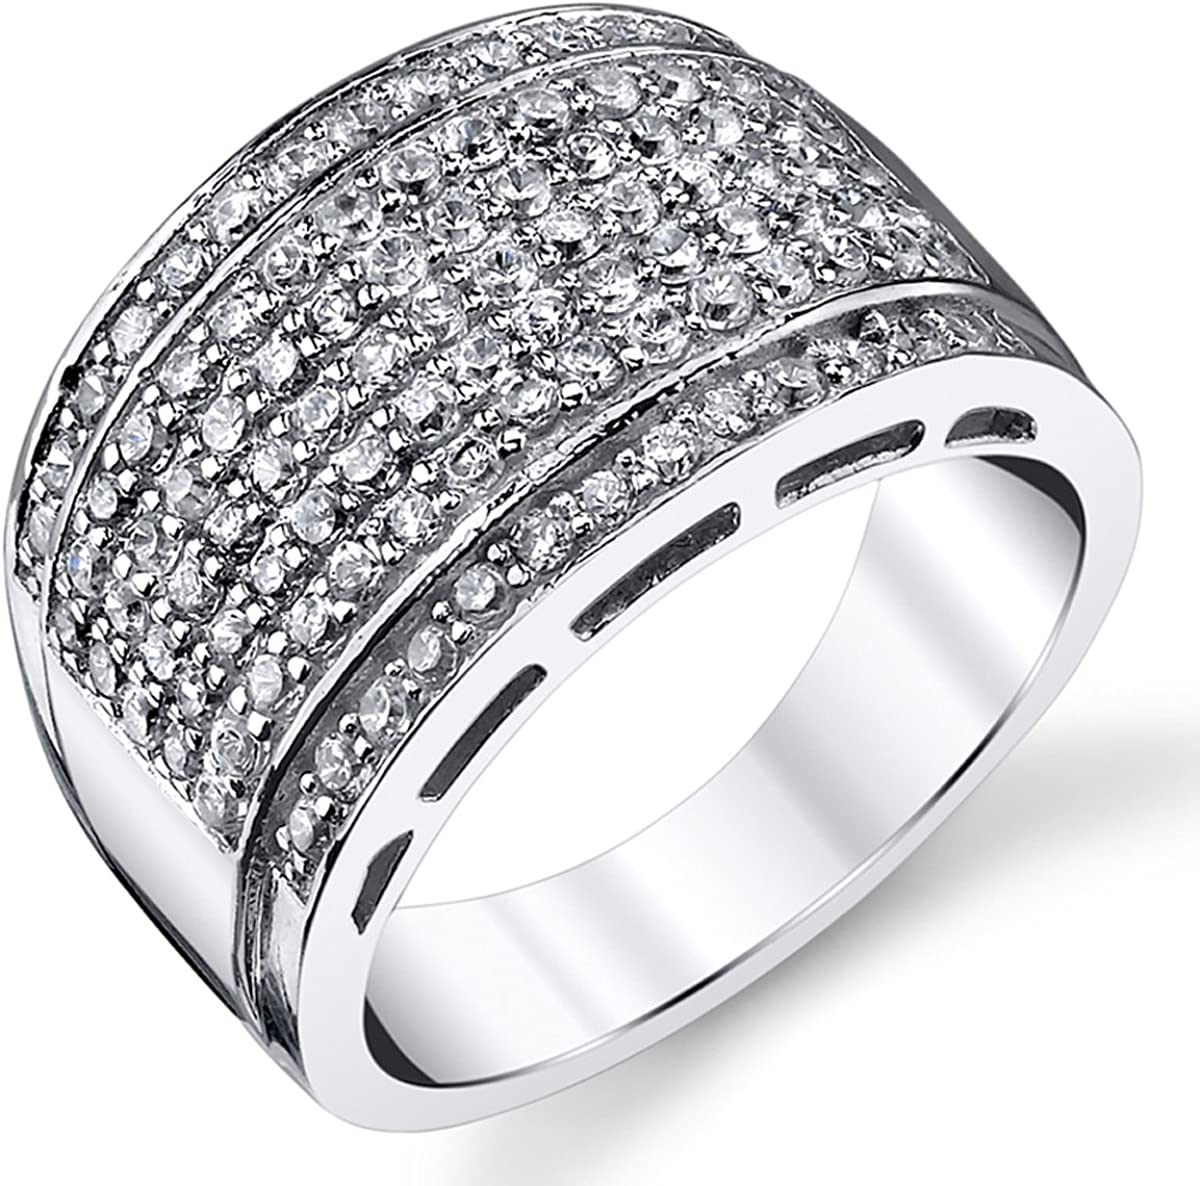 Sterling Silver Men's High Polish Micro Pave Wedding Band Ring With Cubic Zirconia CZ Sizes 5 to 12